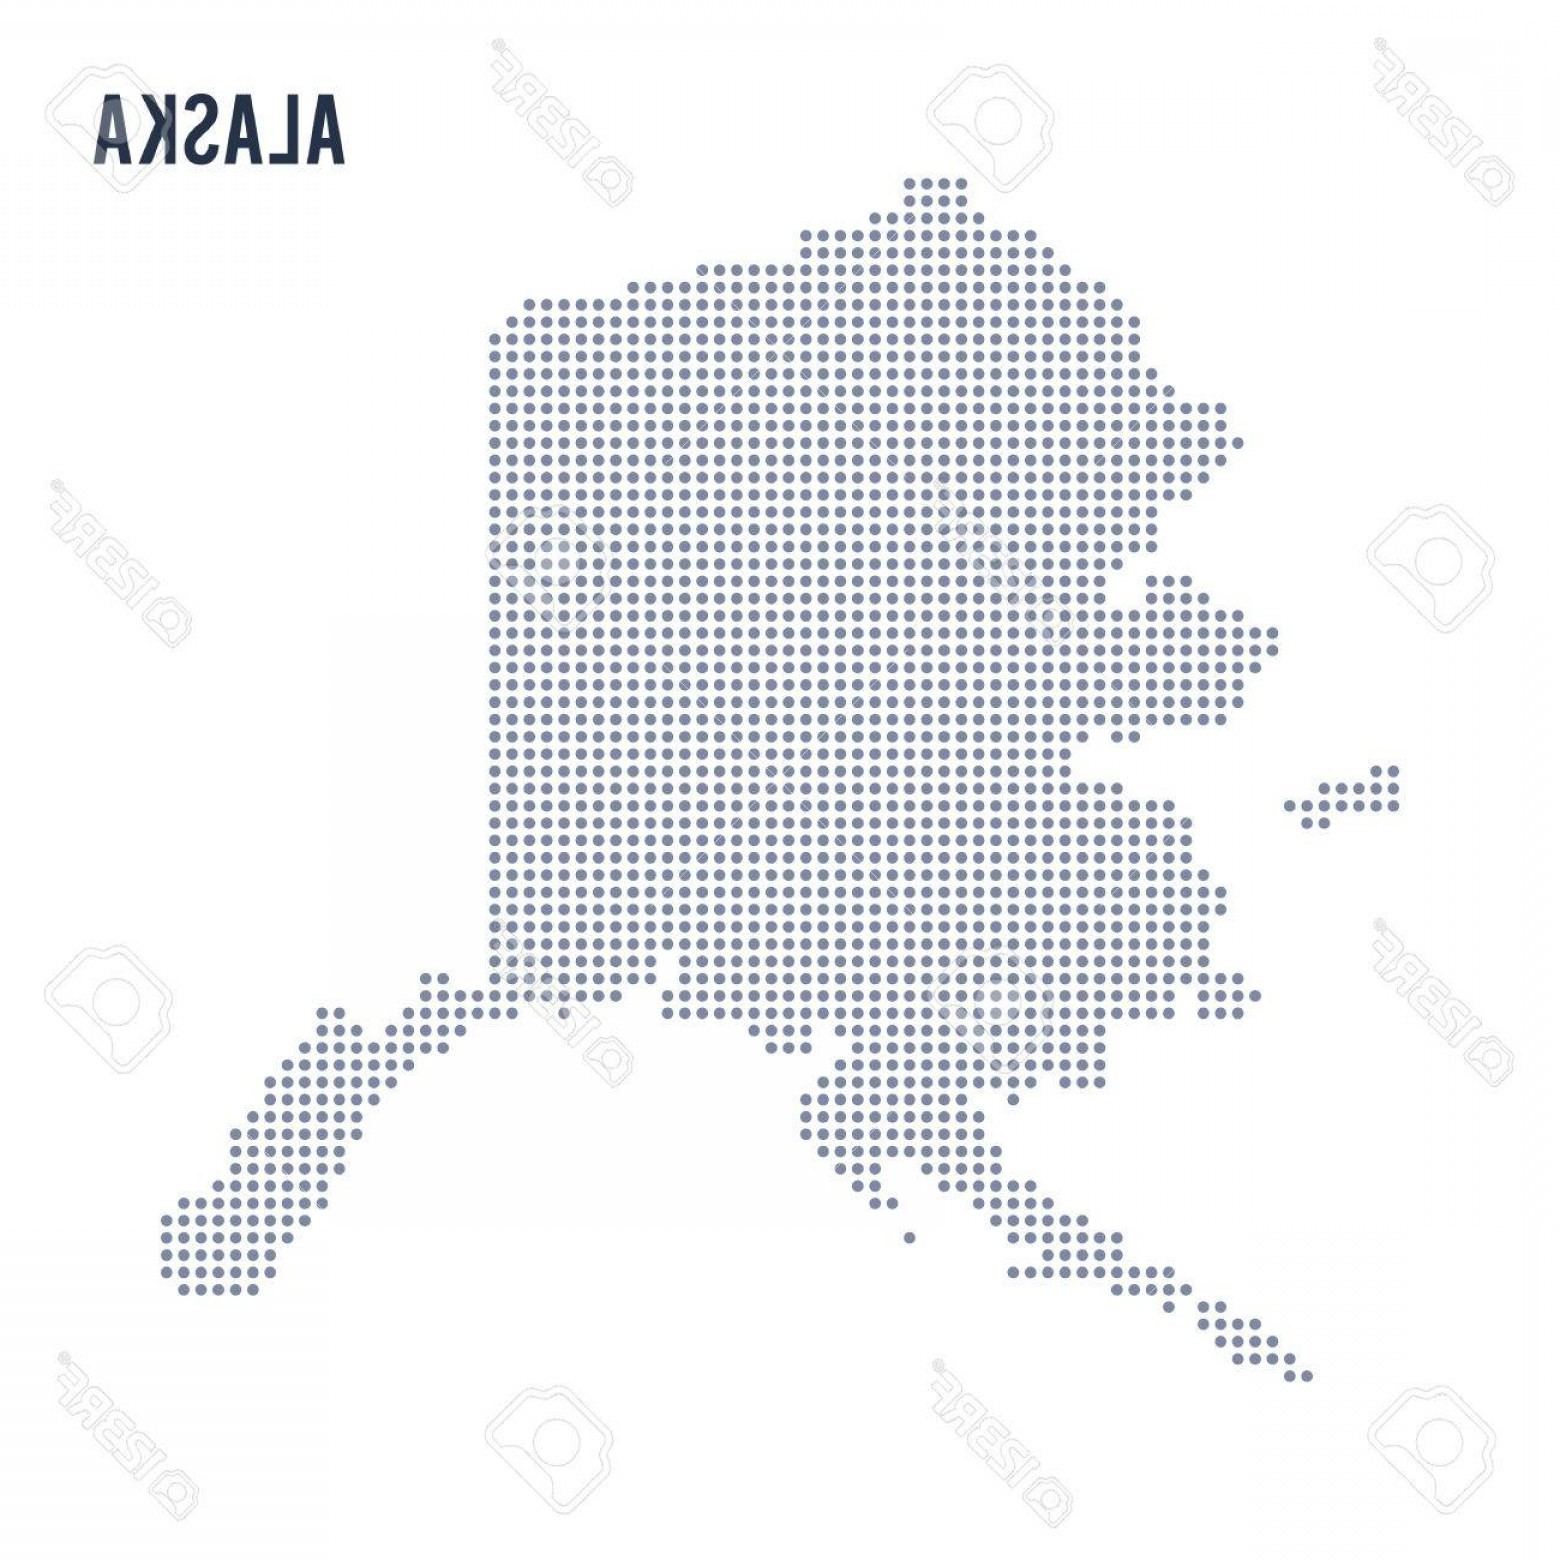 Alaska State White Background Vectors: Photostock Vector Vector Dotted Map State Of Alaska Isolated On White Background Travel Vector Illustration